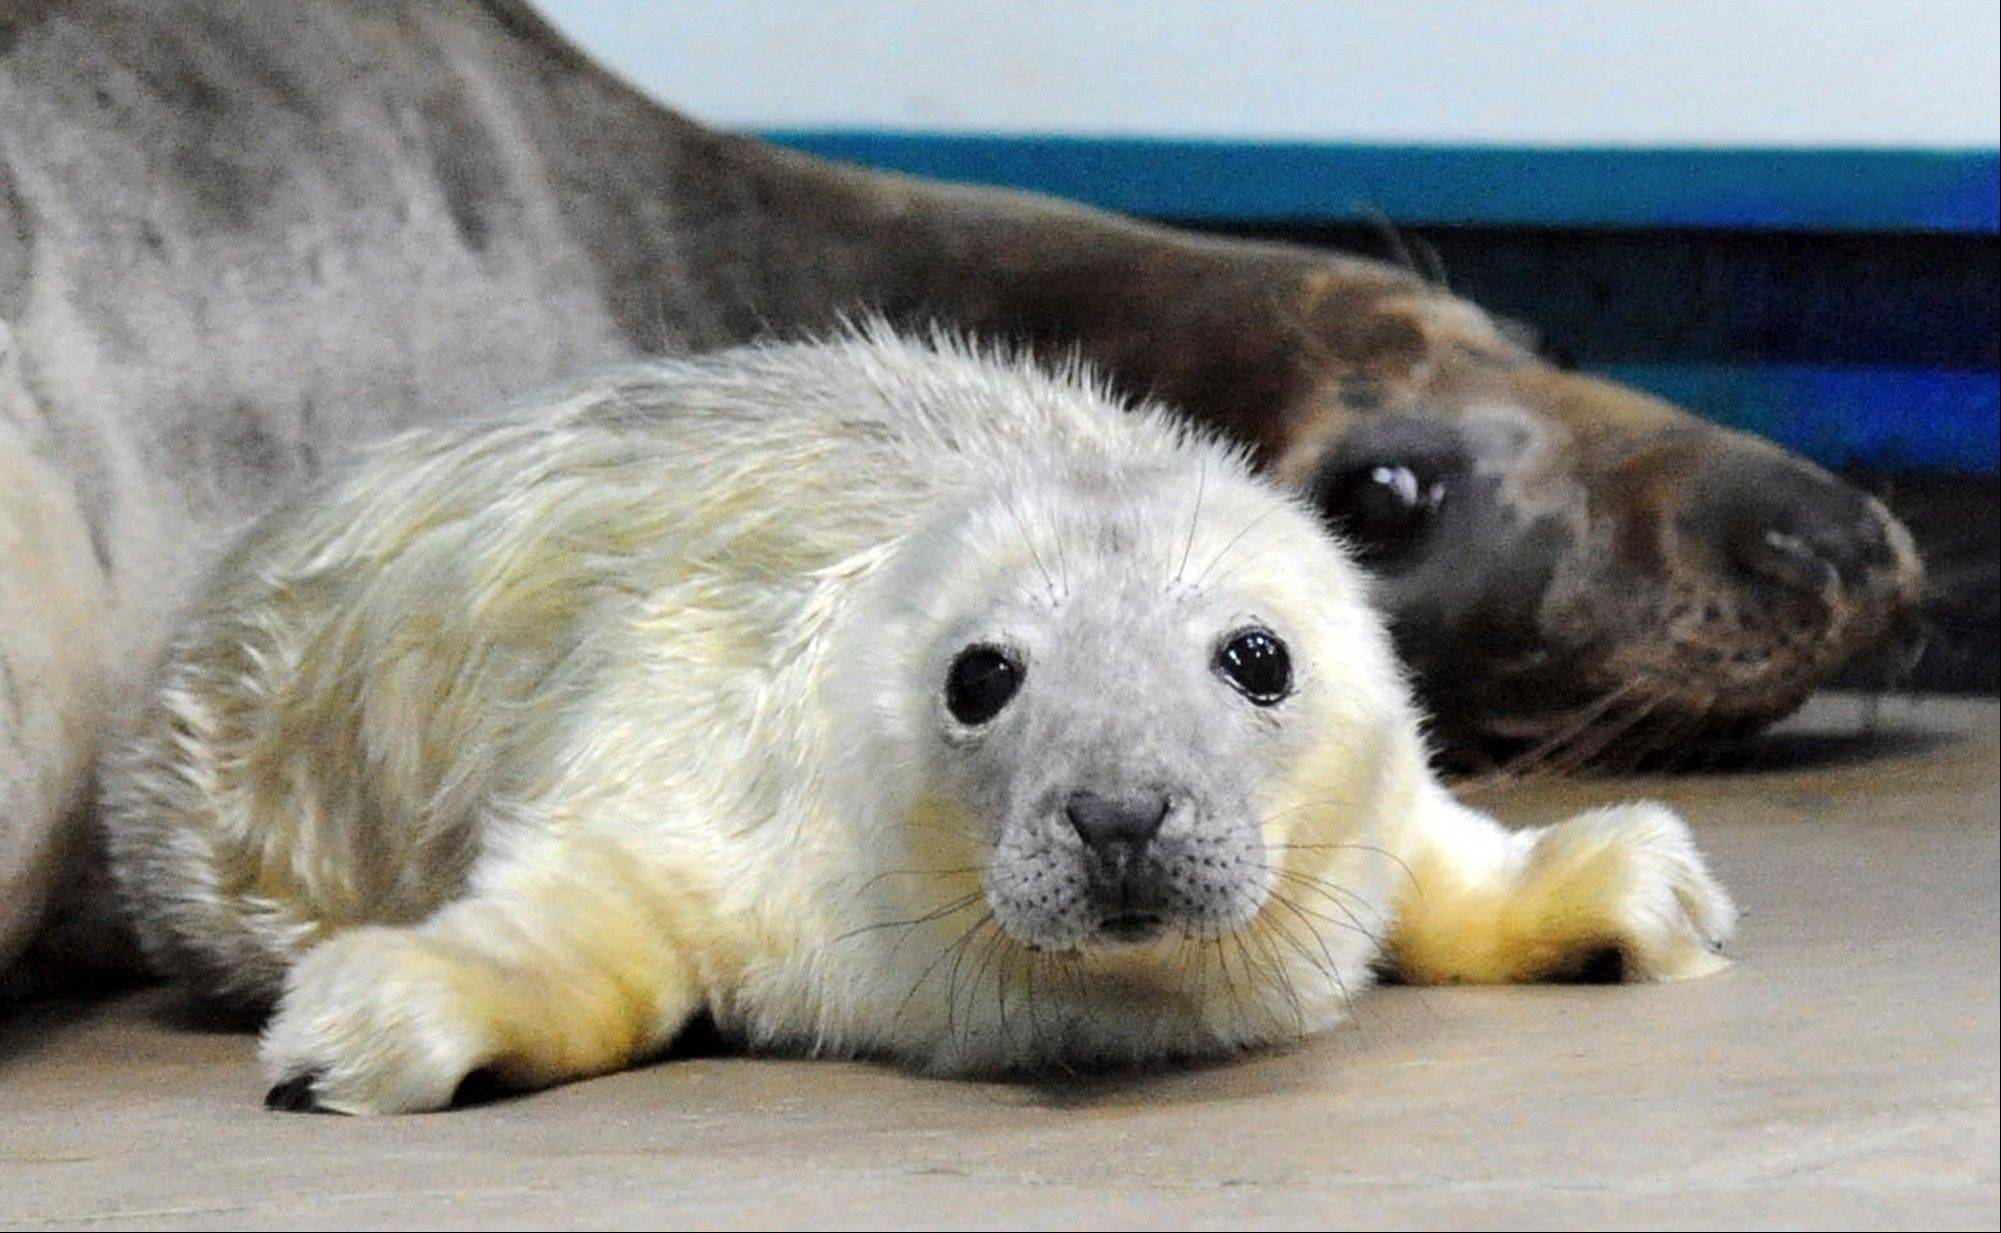 This Thursday, photo provided by the Chicago Zoological Society shows a baby grey seal that was born Wednesday, with his mother, 10-year-old Lily, at the Brookfield Zoo in Brookfield, Ill. Zoo officials say the pup is the first of its species to be born at the zoo. He weighed 25 pounds.